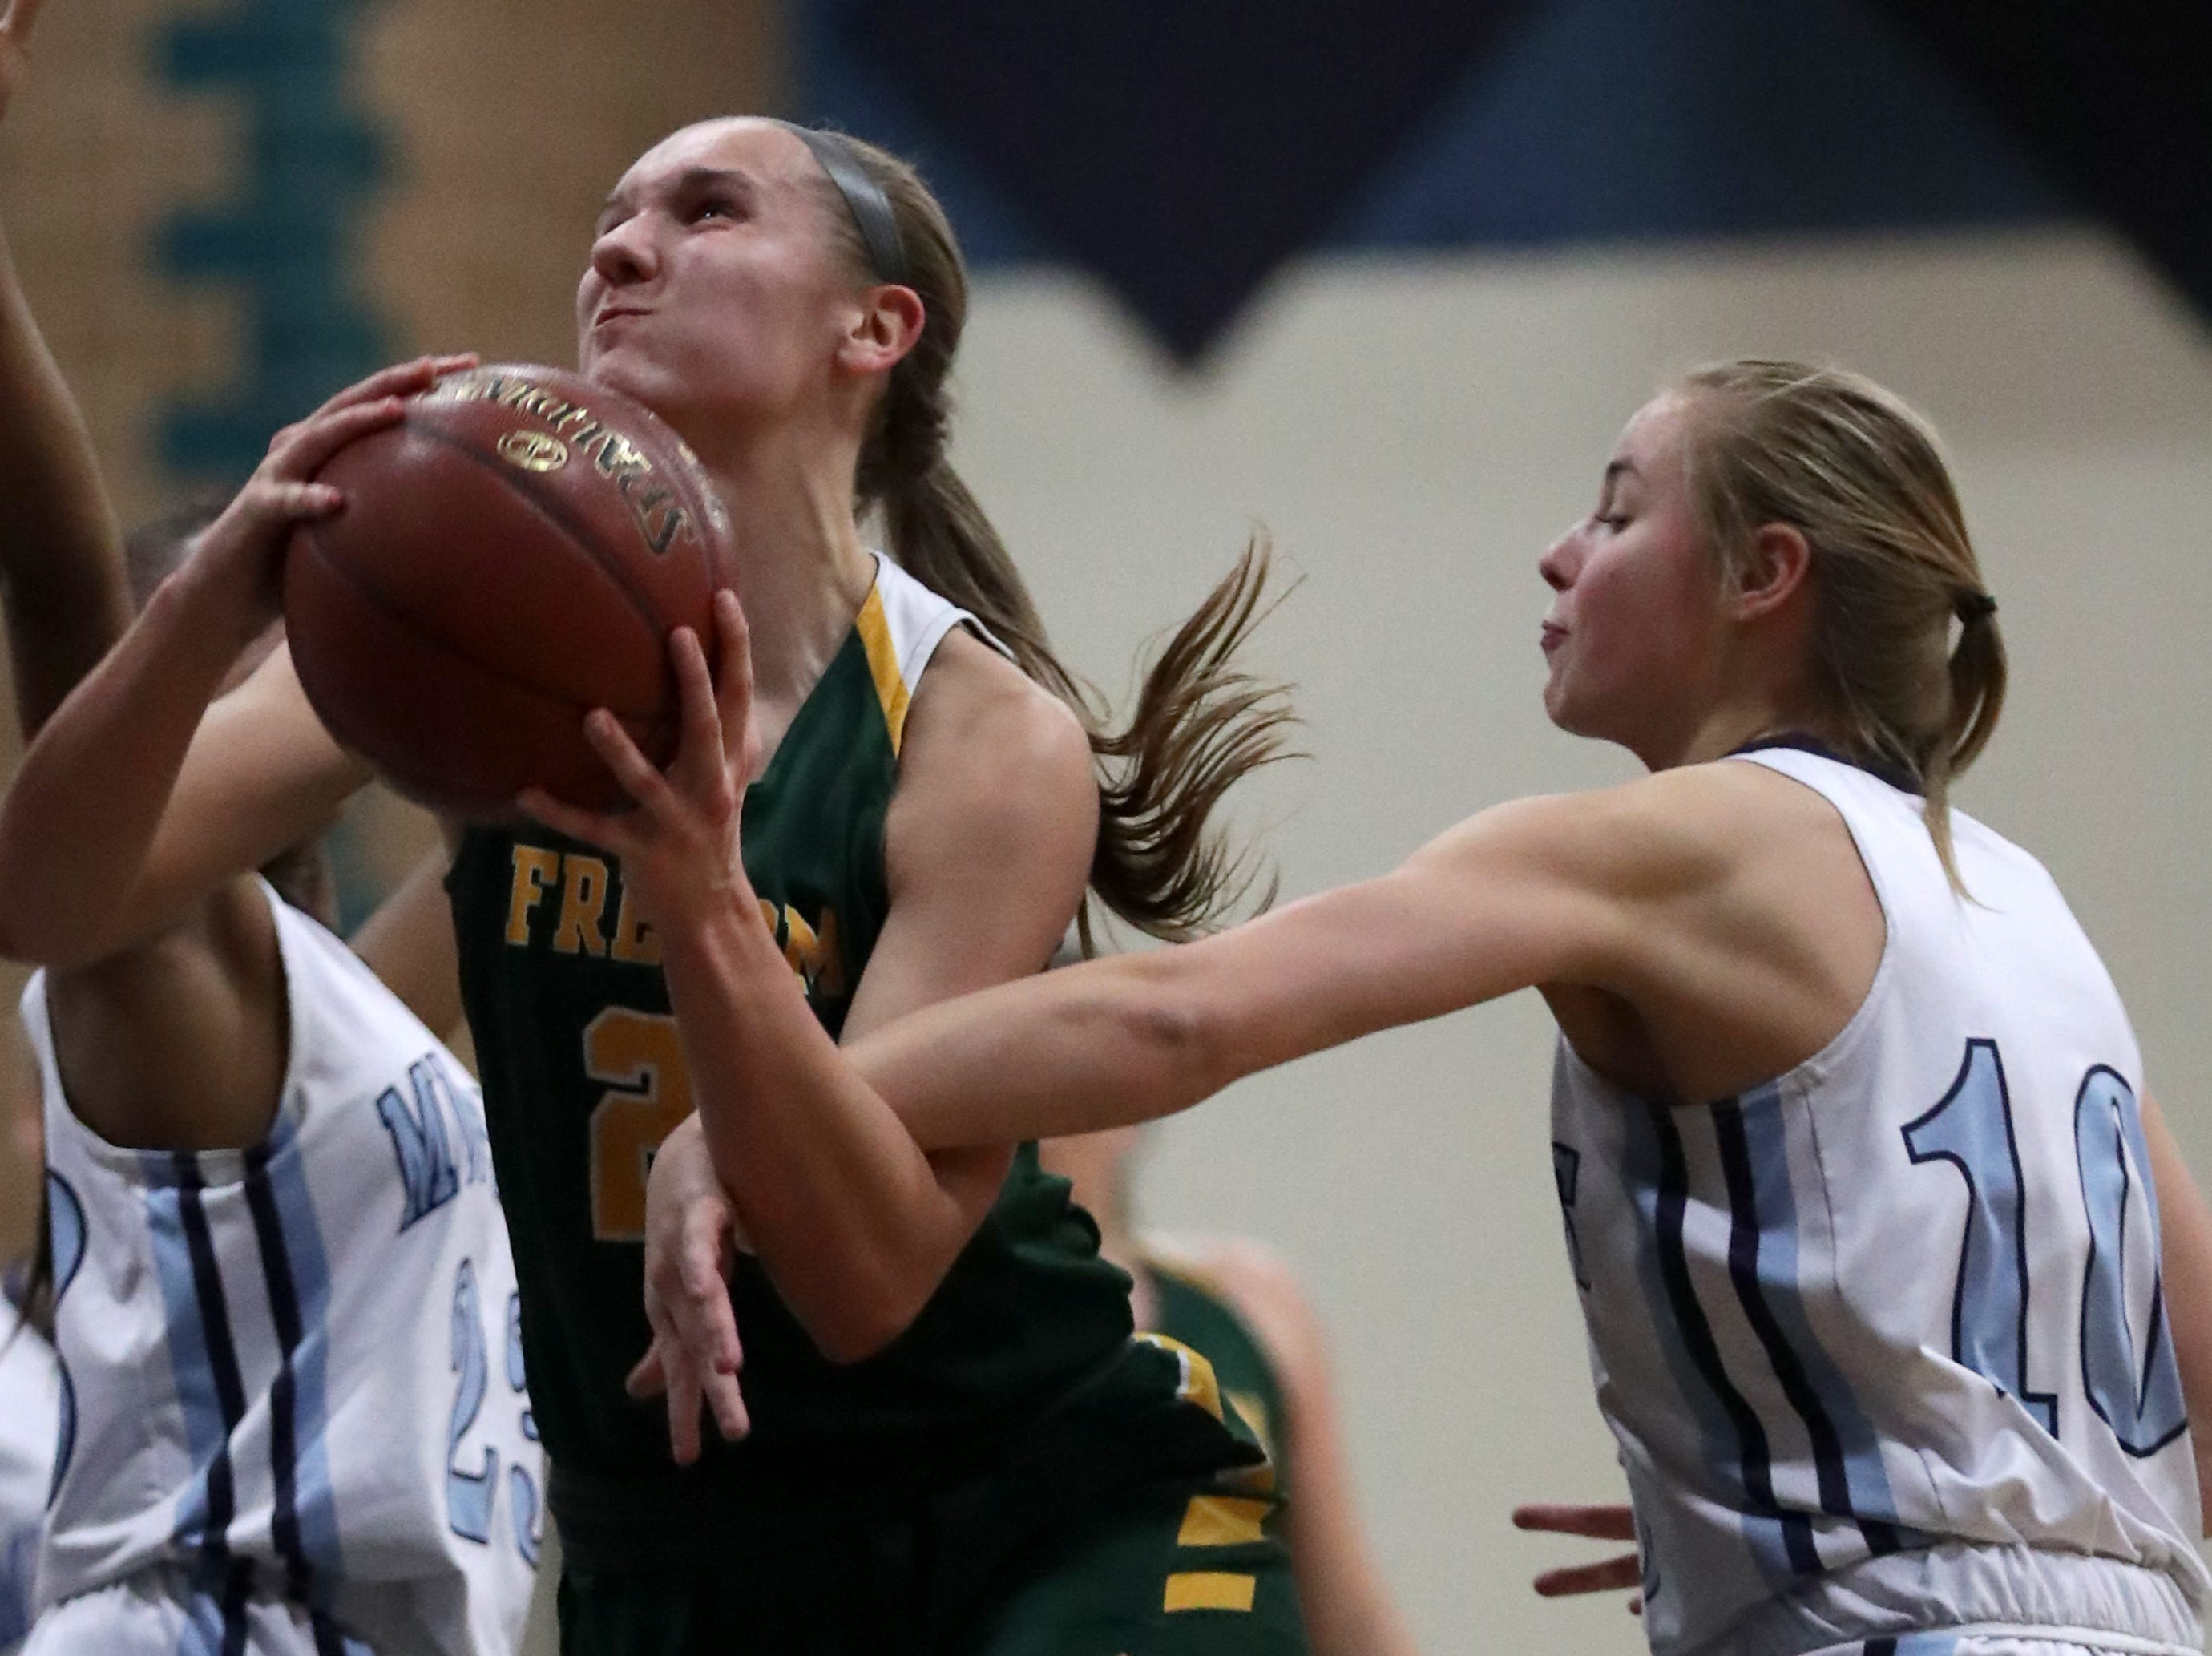 Little Chute High School's #10  Marley Johnson against Freedom High School's #21Callie Genke during their North Eastern Conference girls basketball game on Friday, December 21, 2018, in Little Chute, Wis. Freedom beat Little Chute 56 to 42.Wm. Glasheen/USA TODAY NETWORK-Wisconsin.